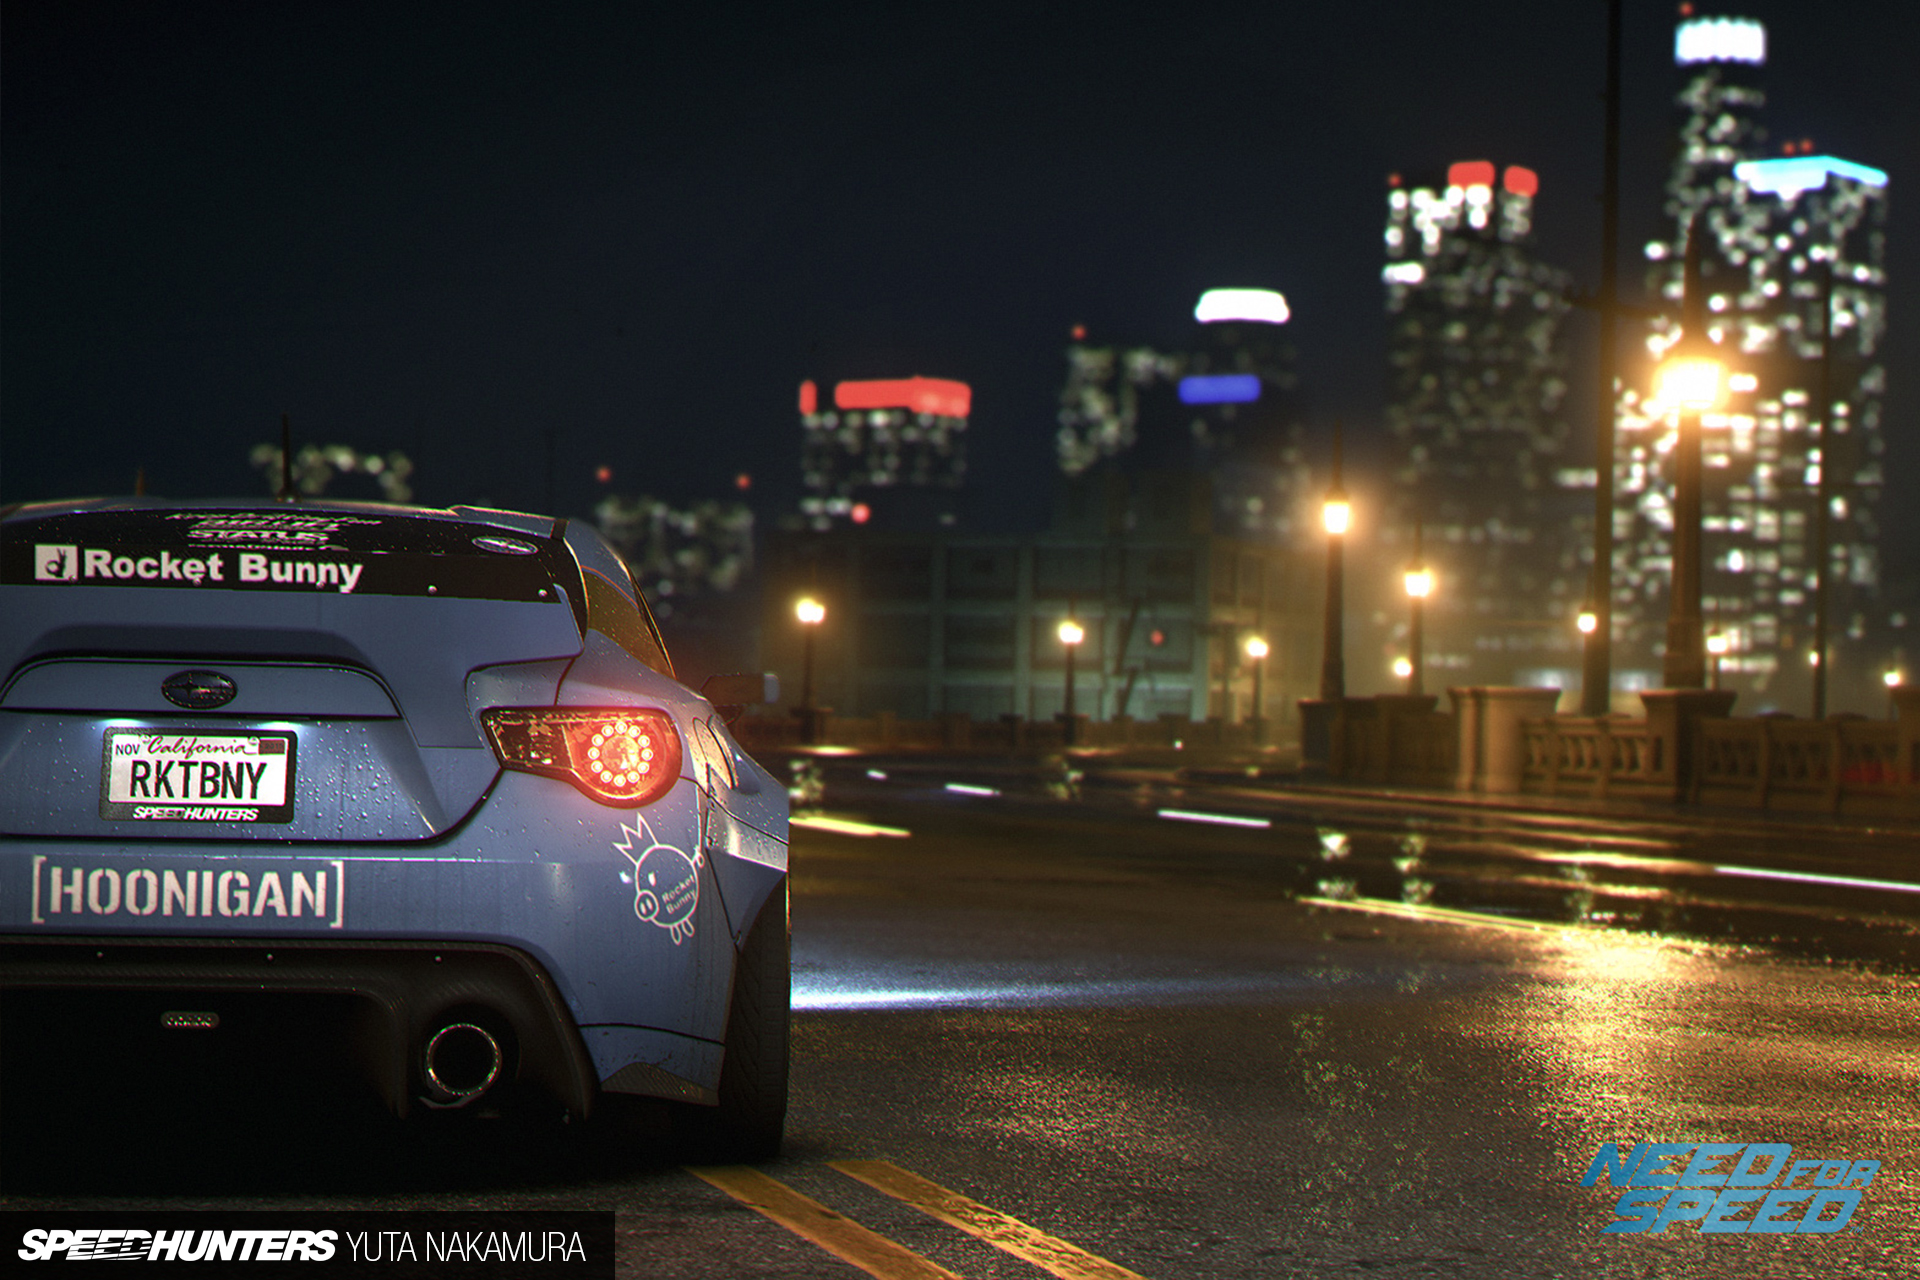 Creating The Cars Of Need for Speed - Speedhunters